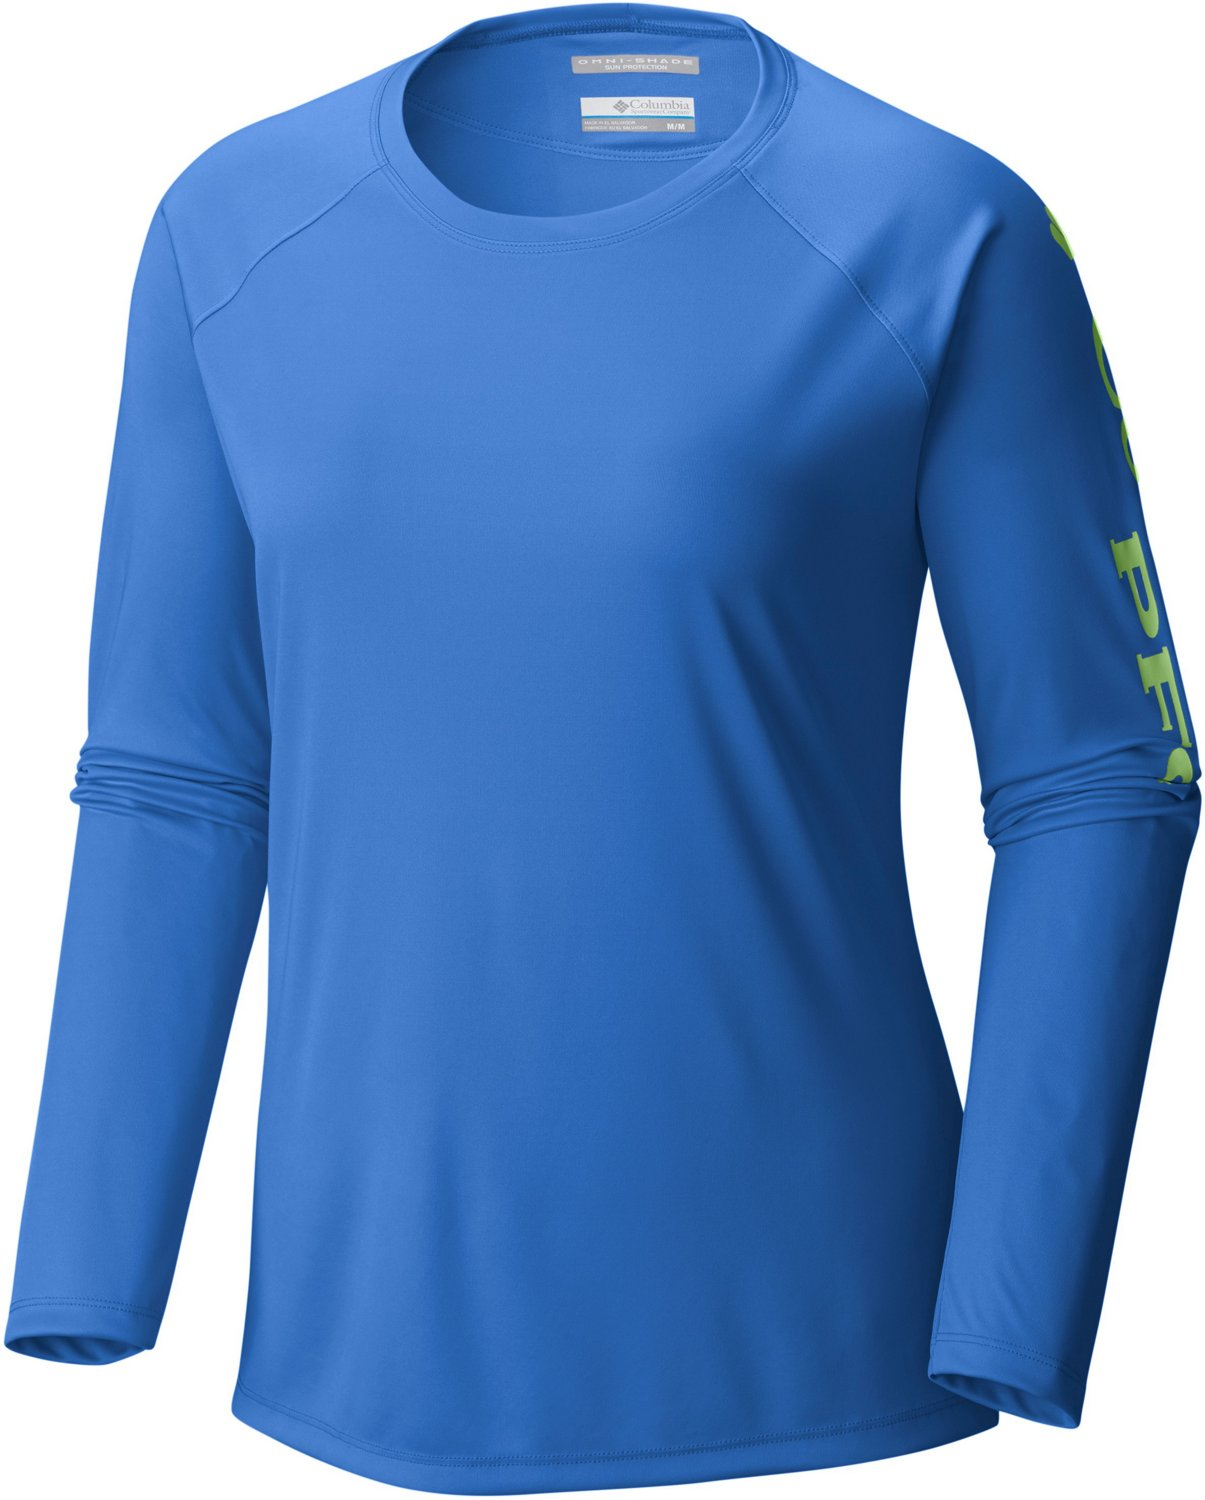 b617ebec508 Display product reviews for Columbia Sportswear Women s Tidal Tee II Long  Sleeve T-shirt